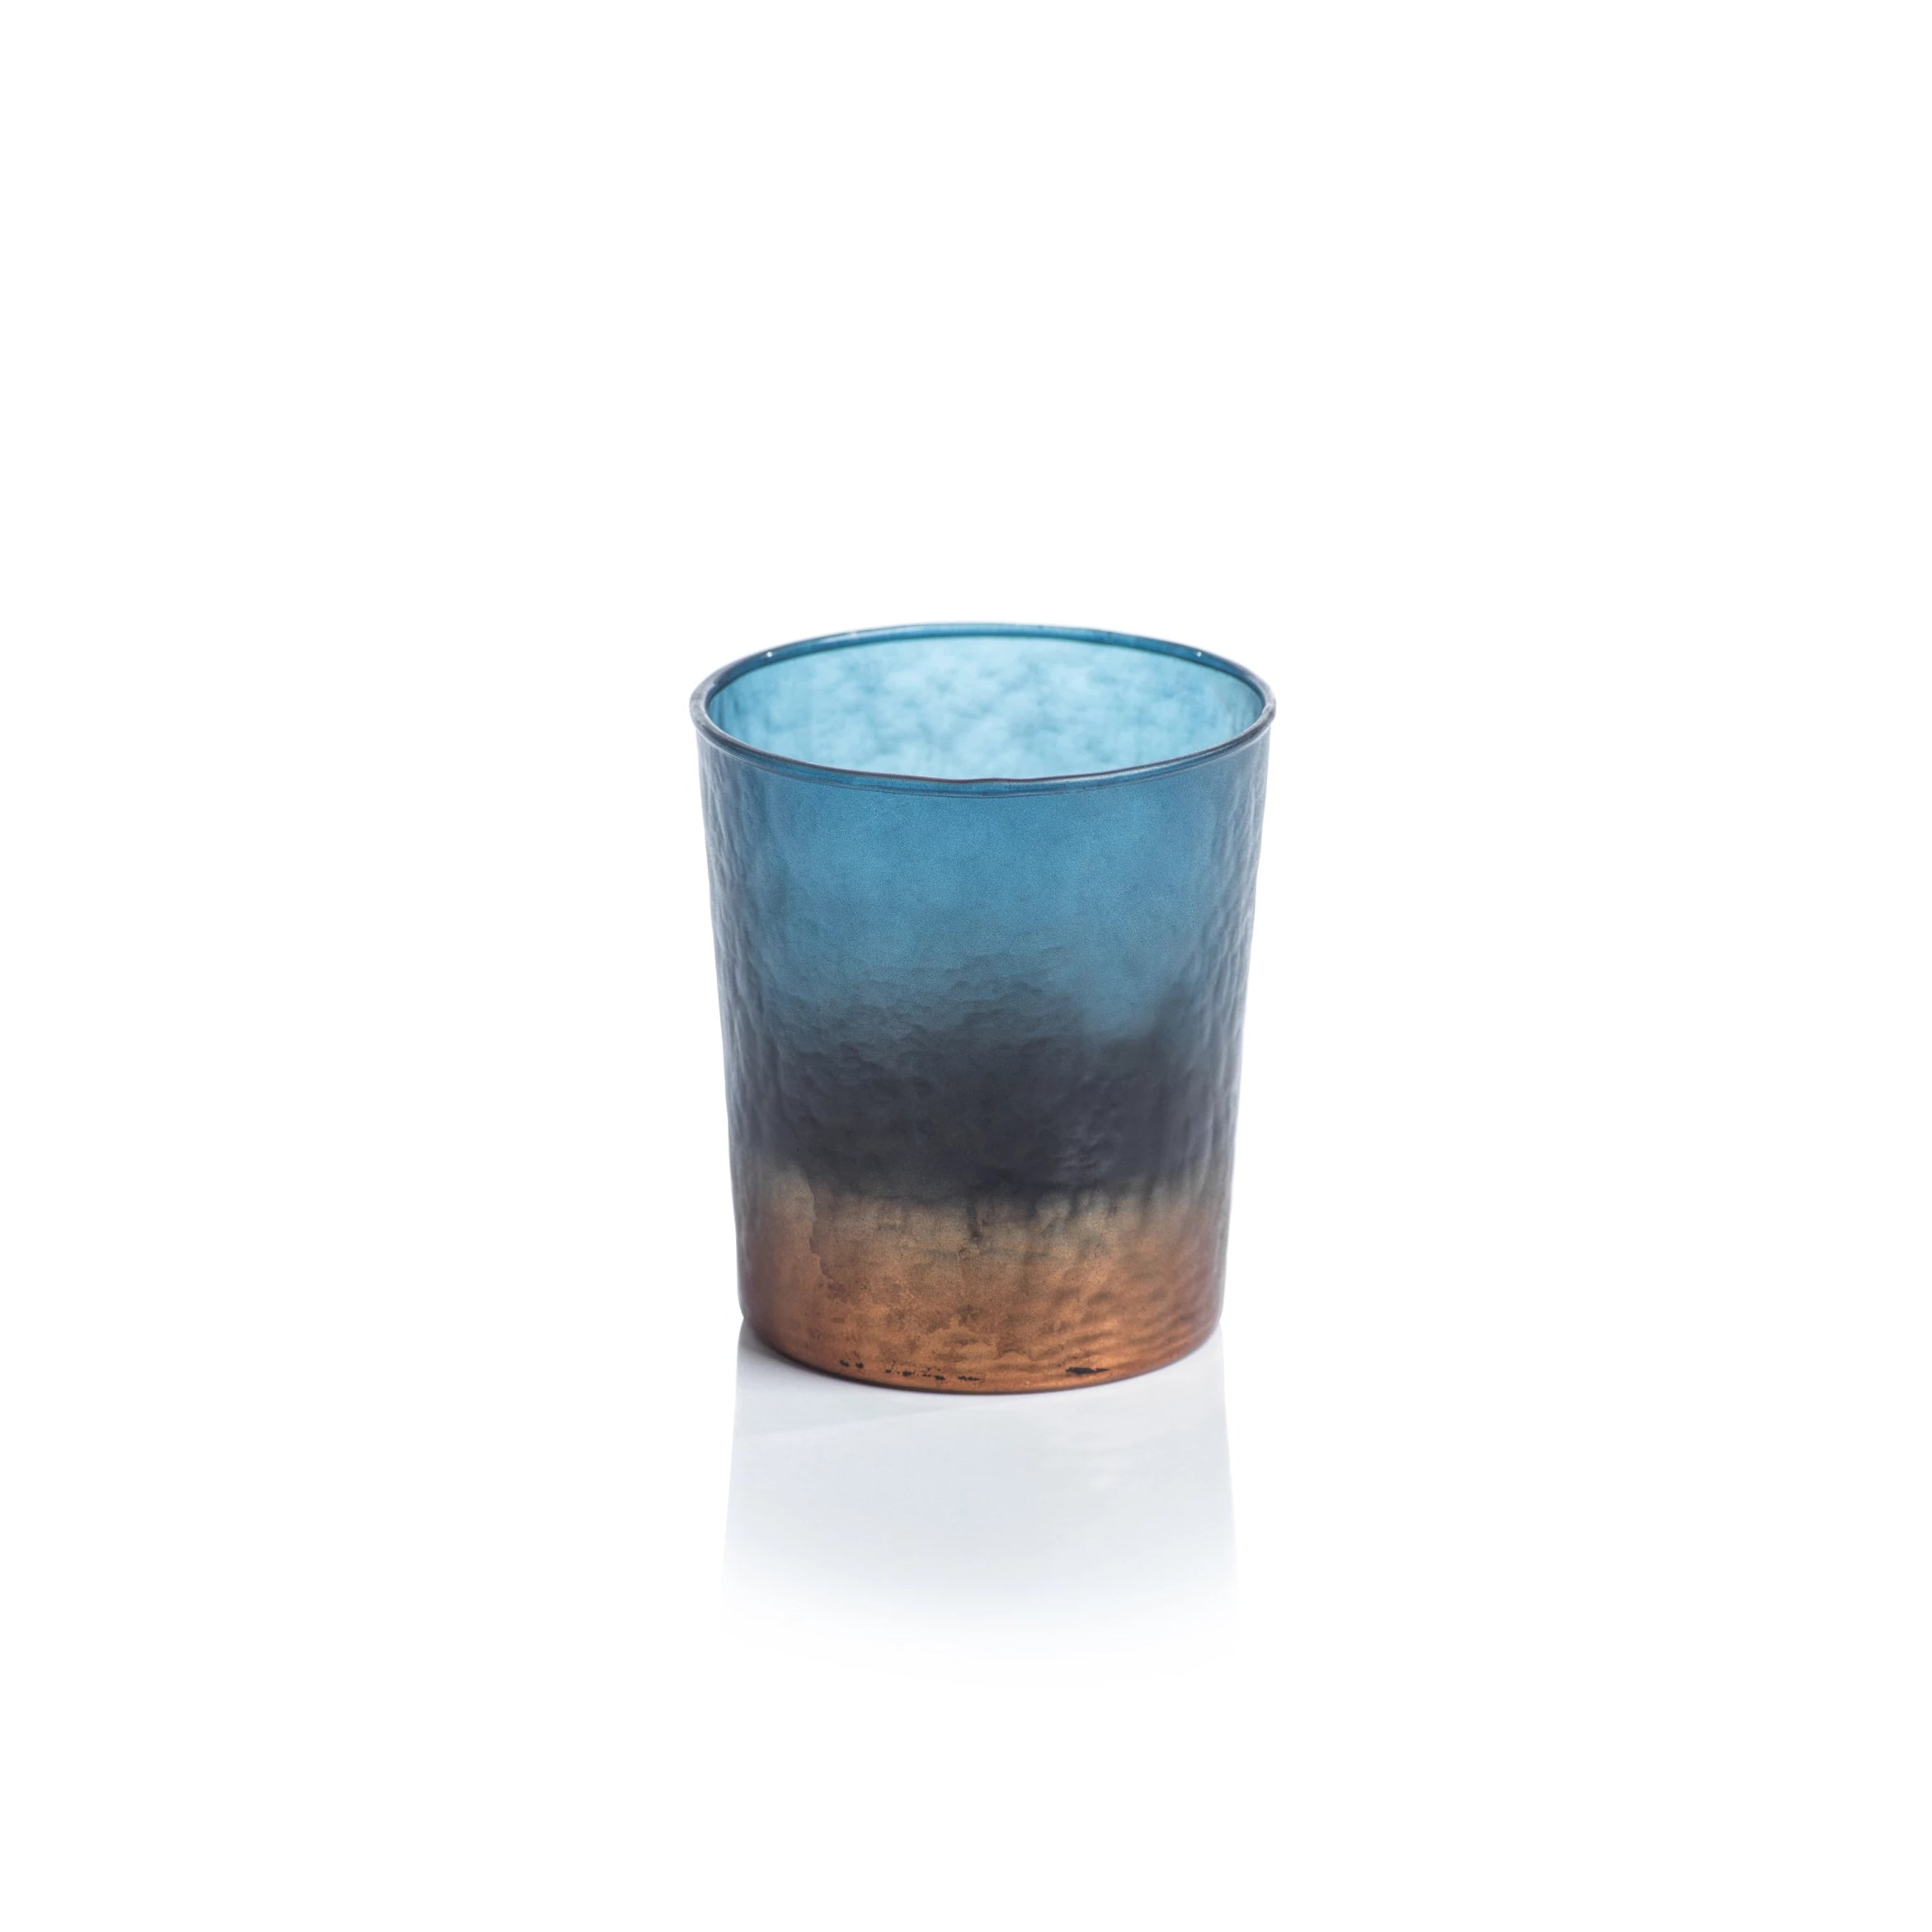 Burnt Copper Tealight Holders - CARLYLE AVENUE